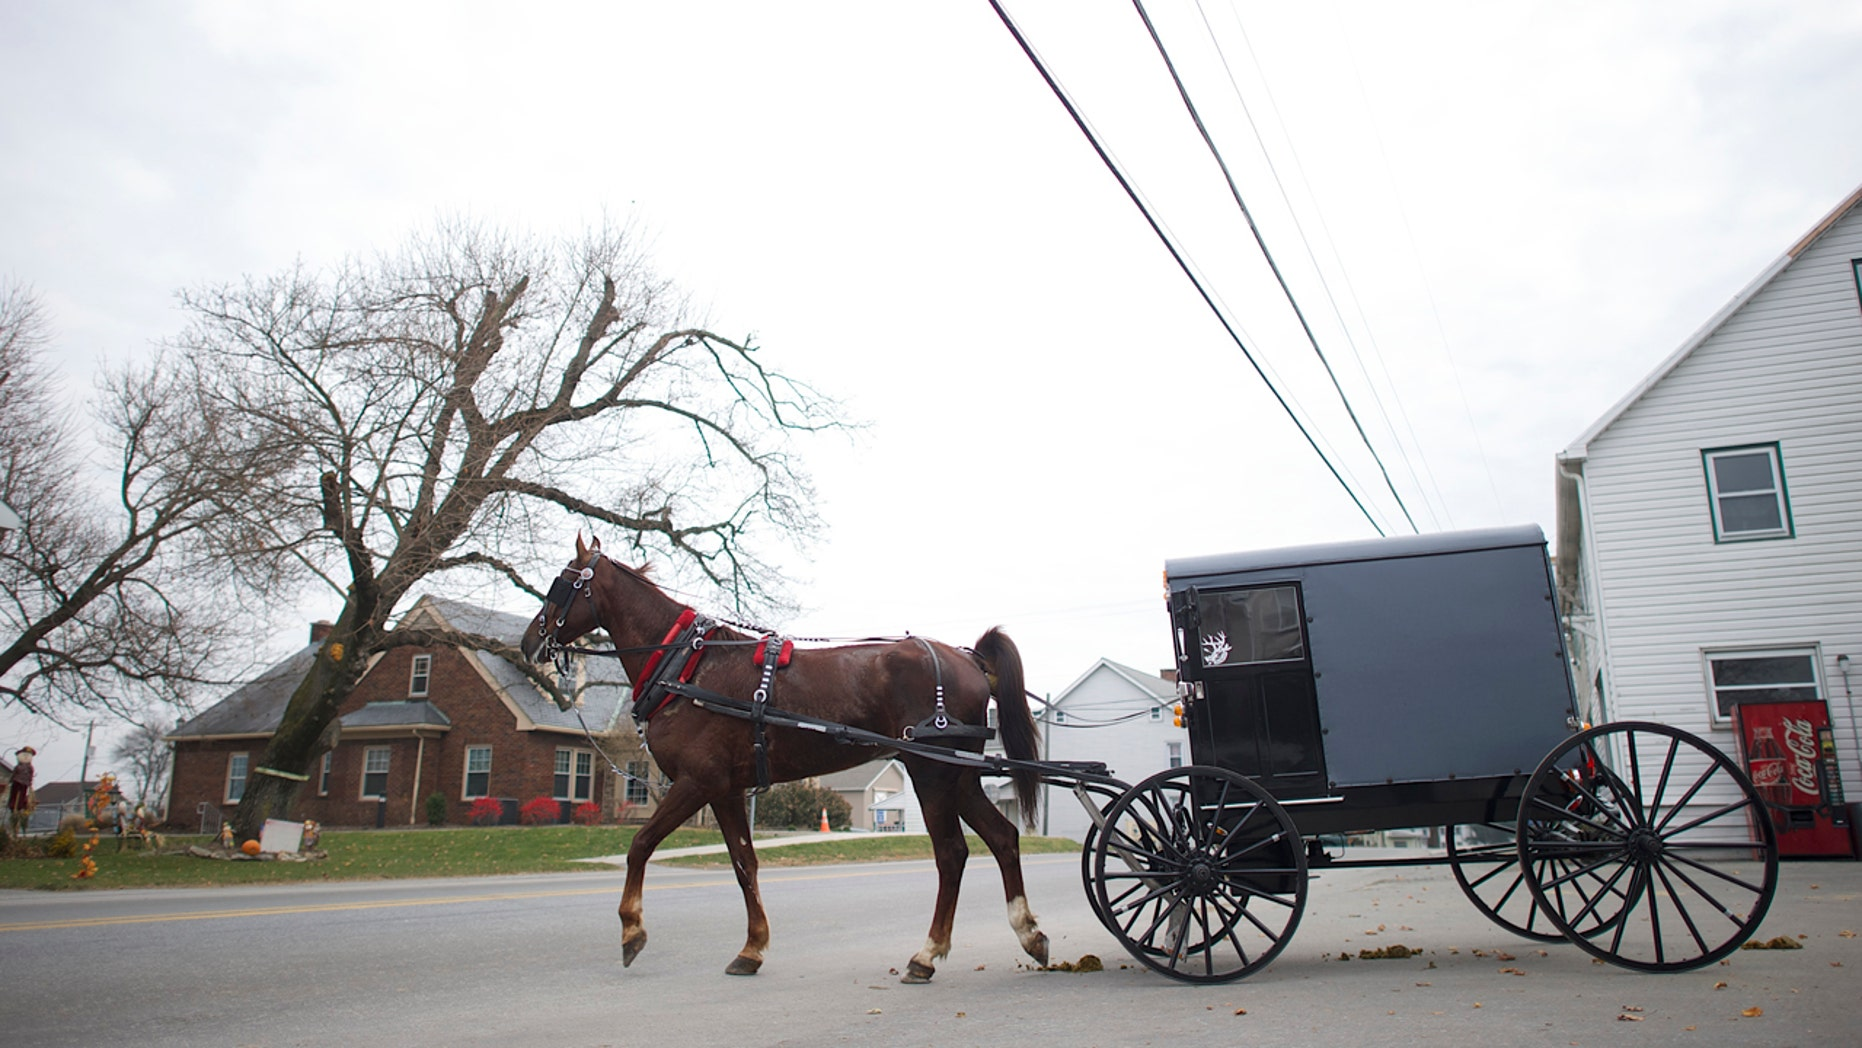 An Amish horse and buggy travels on a road in Bart Township, Pennsylvania December 1, 2013. On Oct. 2, 2006, Charles Roberts, 32, took 10 Amish girls hostage in their one-room schoolhouse in rural Pennsylvania, lined them up and shot them in the head. He then killed himself. Along with that, Terri Roberts herself became a victim, forced to confront life knowing that her son had committed such an atrocity. When the Amish forgave her son, it allowed Roberts, who is not Amish, to forgive him as well. Picture taken December 1, 2013.  REUTERS/Mark Makela (UNITED STATES - Tags: CRIME LAW SOCIETY) - RTX165AM